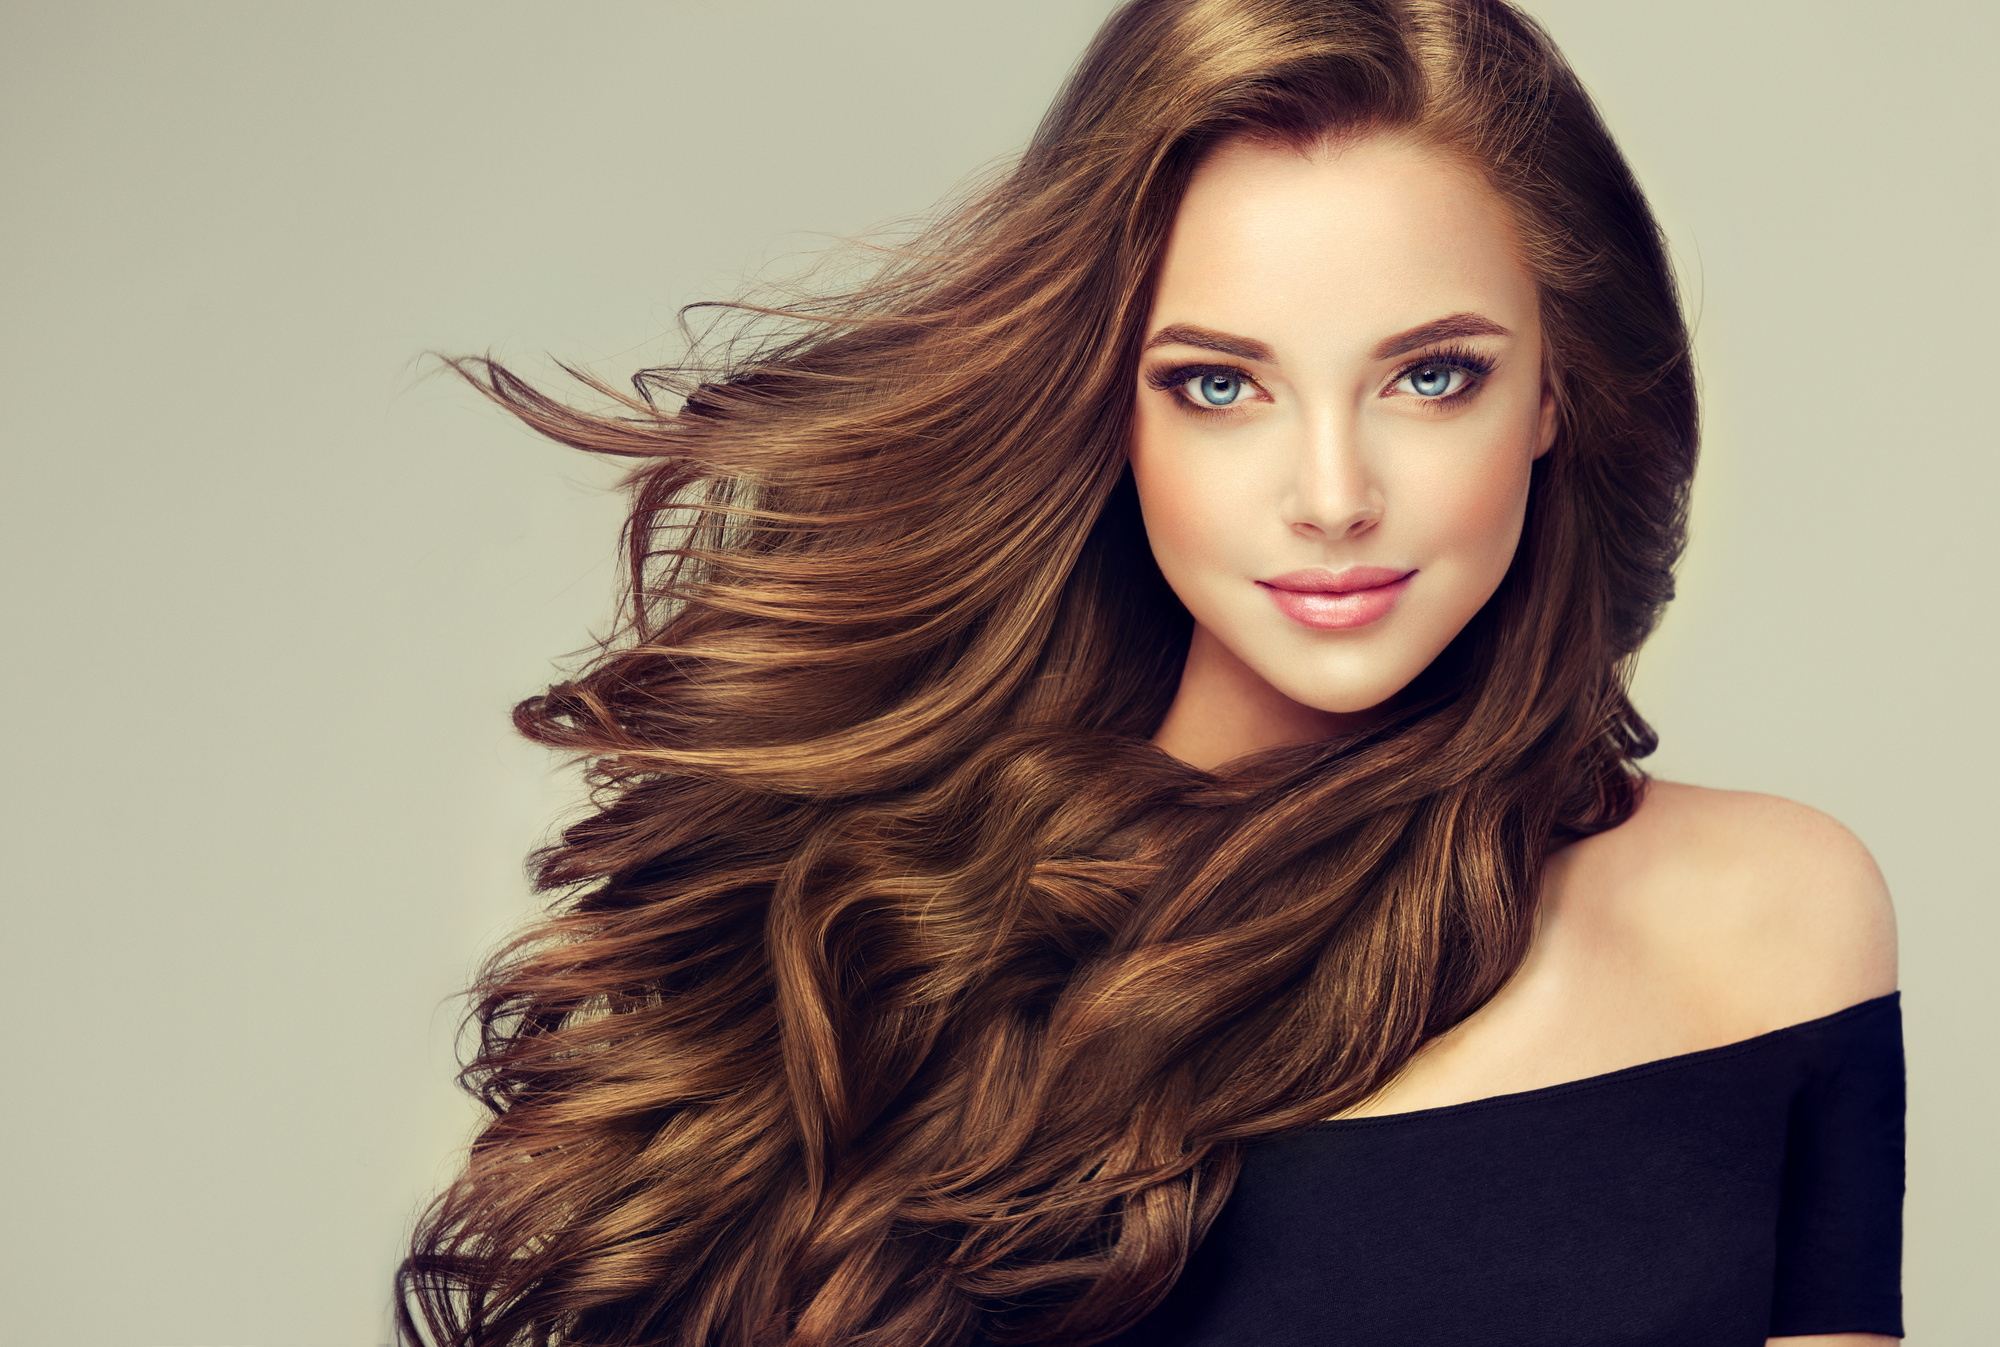 Rapunzel, Rapunzel: 7 Essential Tips for Maintaining Your Luscious Long Locks